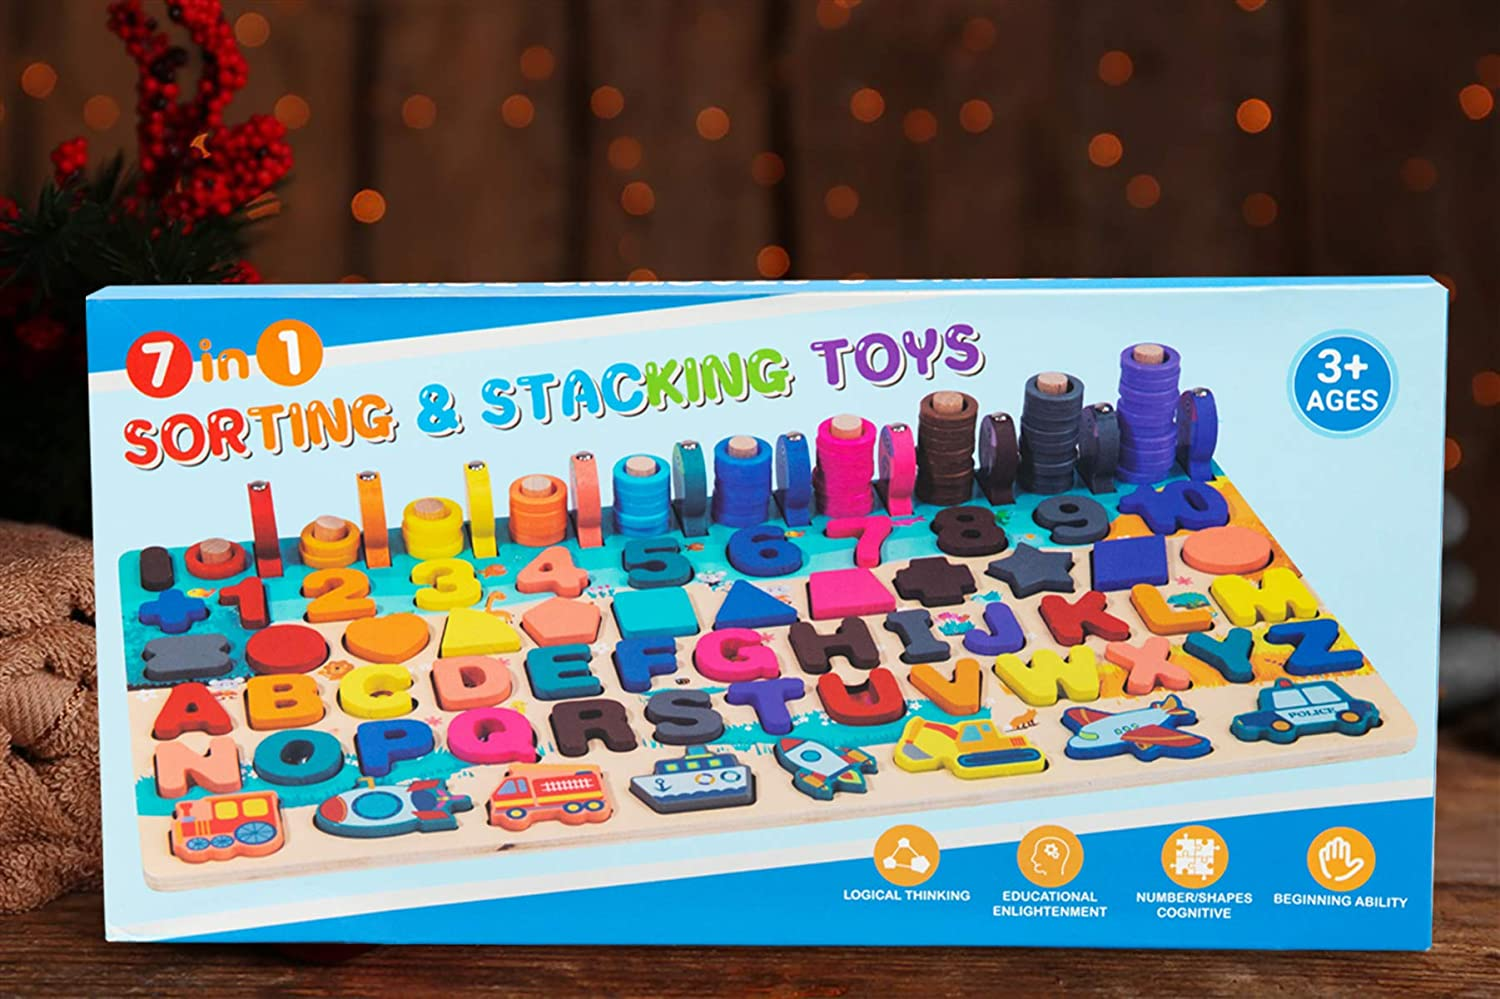 8 in 1 Wooden Vehicle Fishing Counting Blocks Sorting Toys Shape Block Educational Toys Preschool Stacking Toy Wooden Number Letter Puzzles Toddlers Montessori Toys for Kids Age 2 3 4 5 Years Old